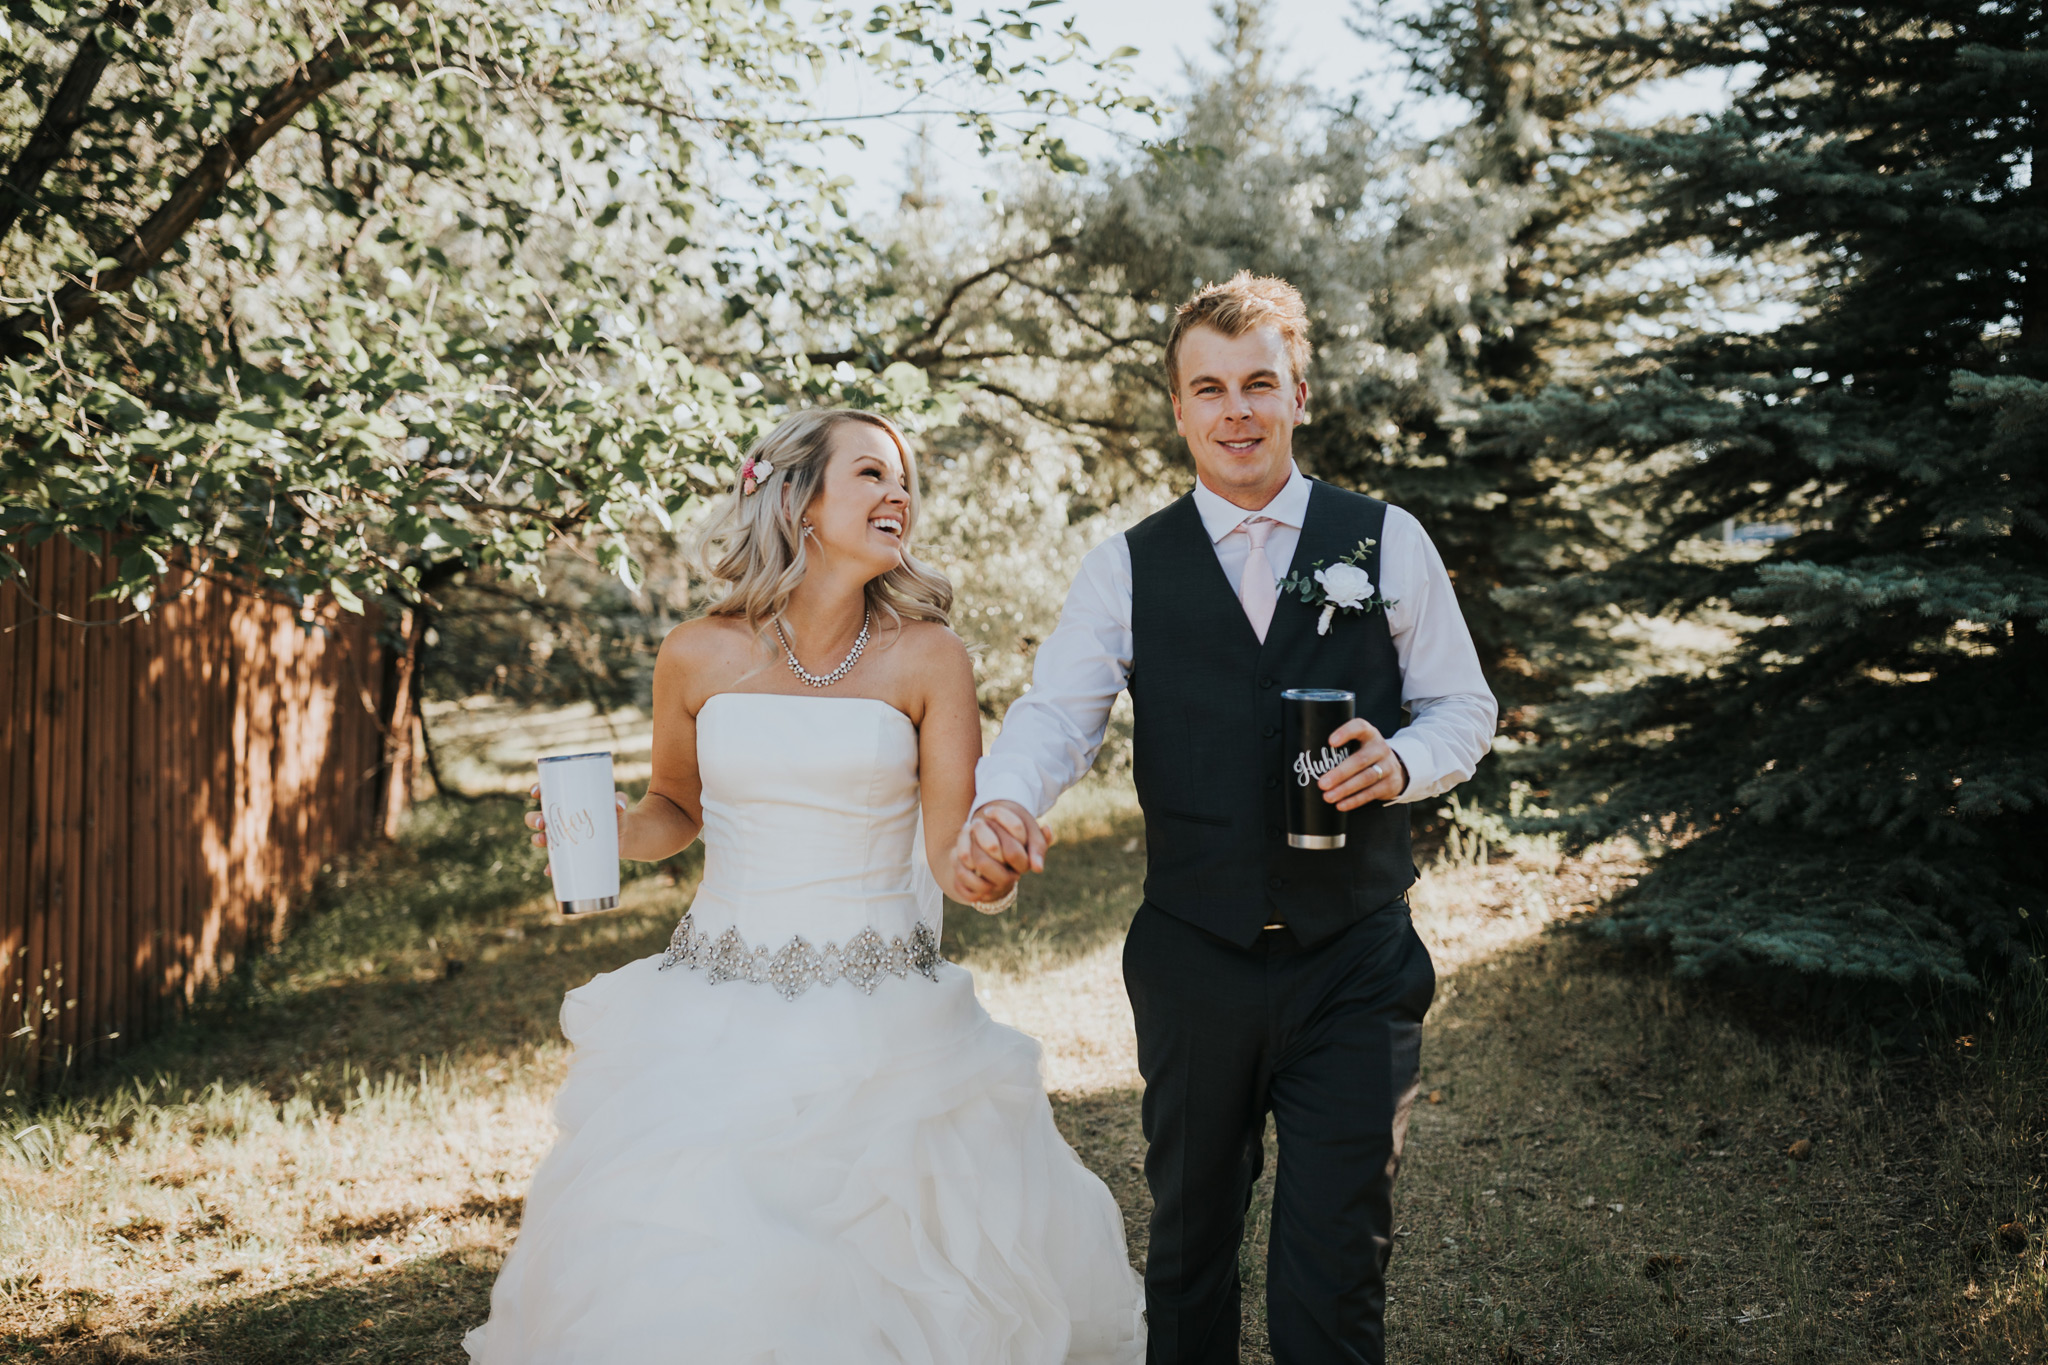 bride and groom walking laughing holding matching wifey hubby travel mugs